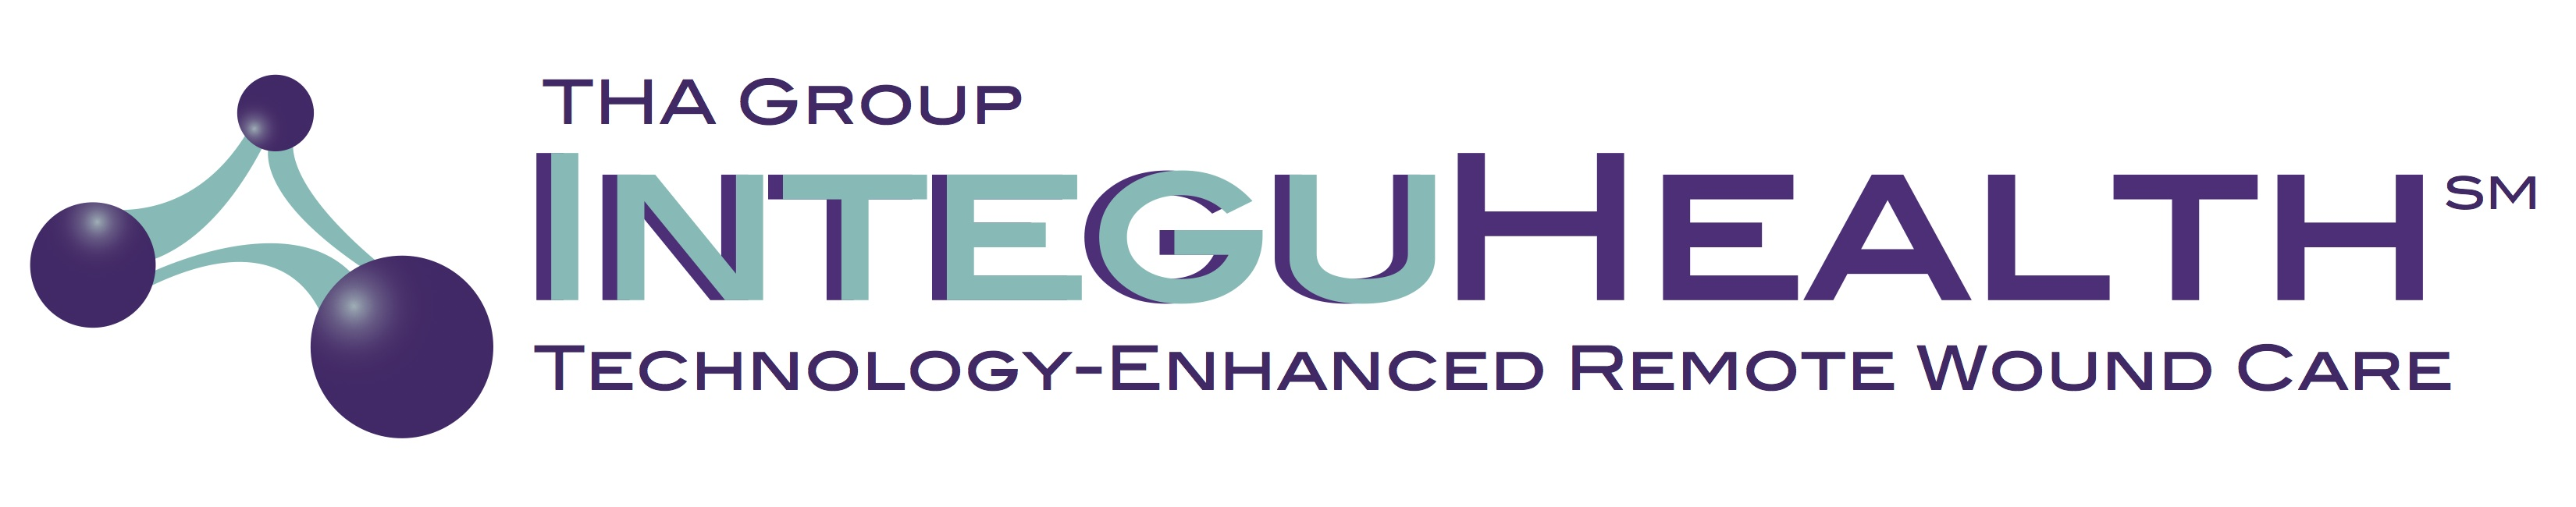 integuhealth_logo